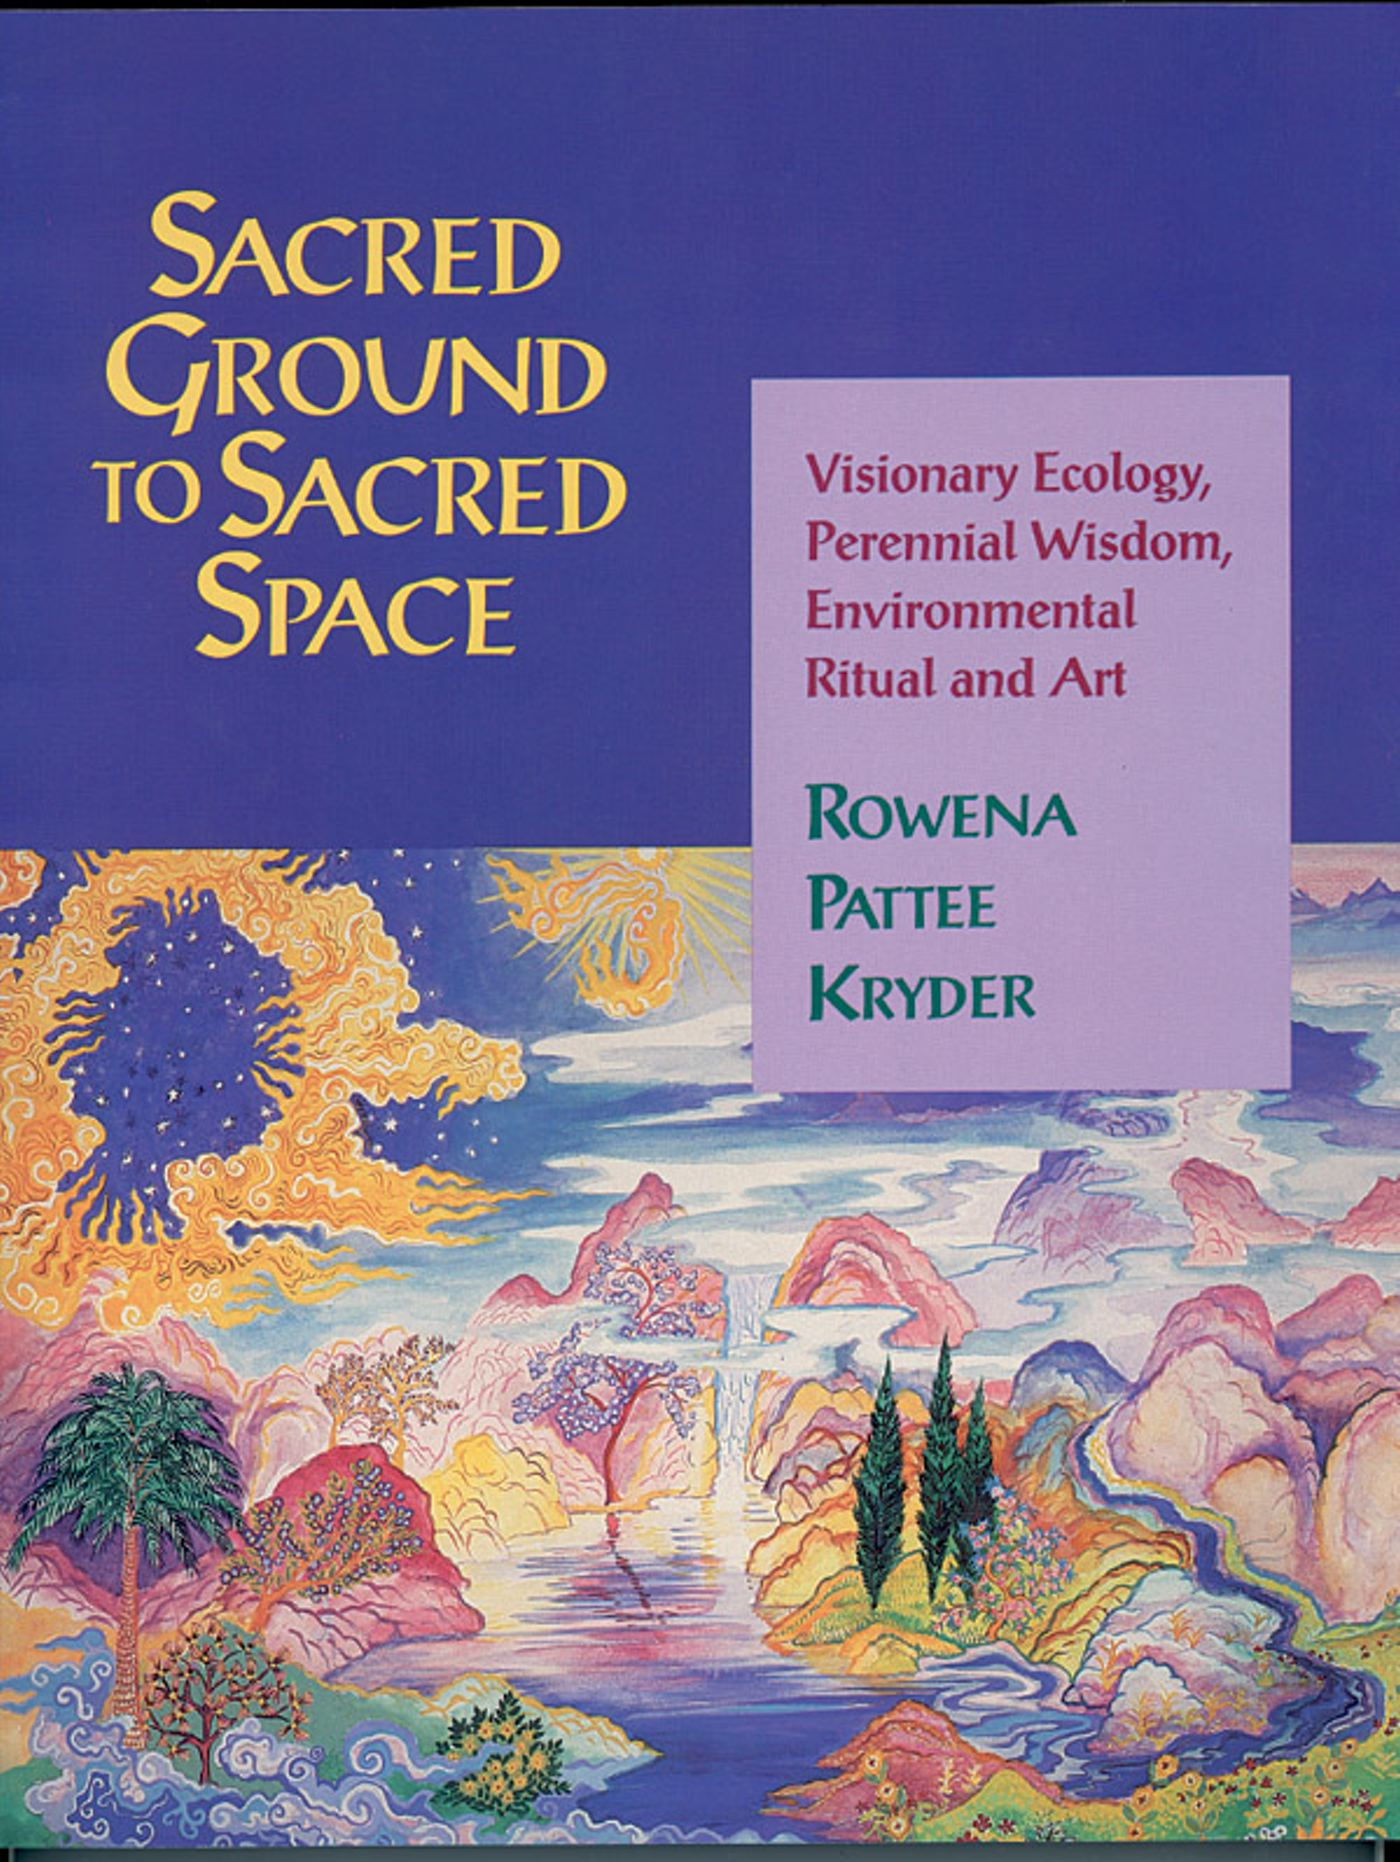 Sacred ground to sacred space 9781879181205 hr